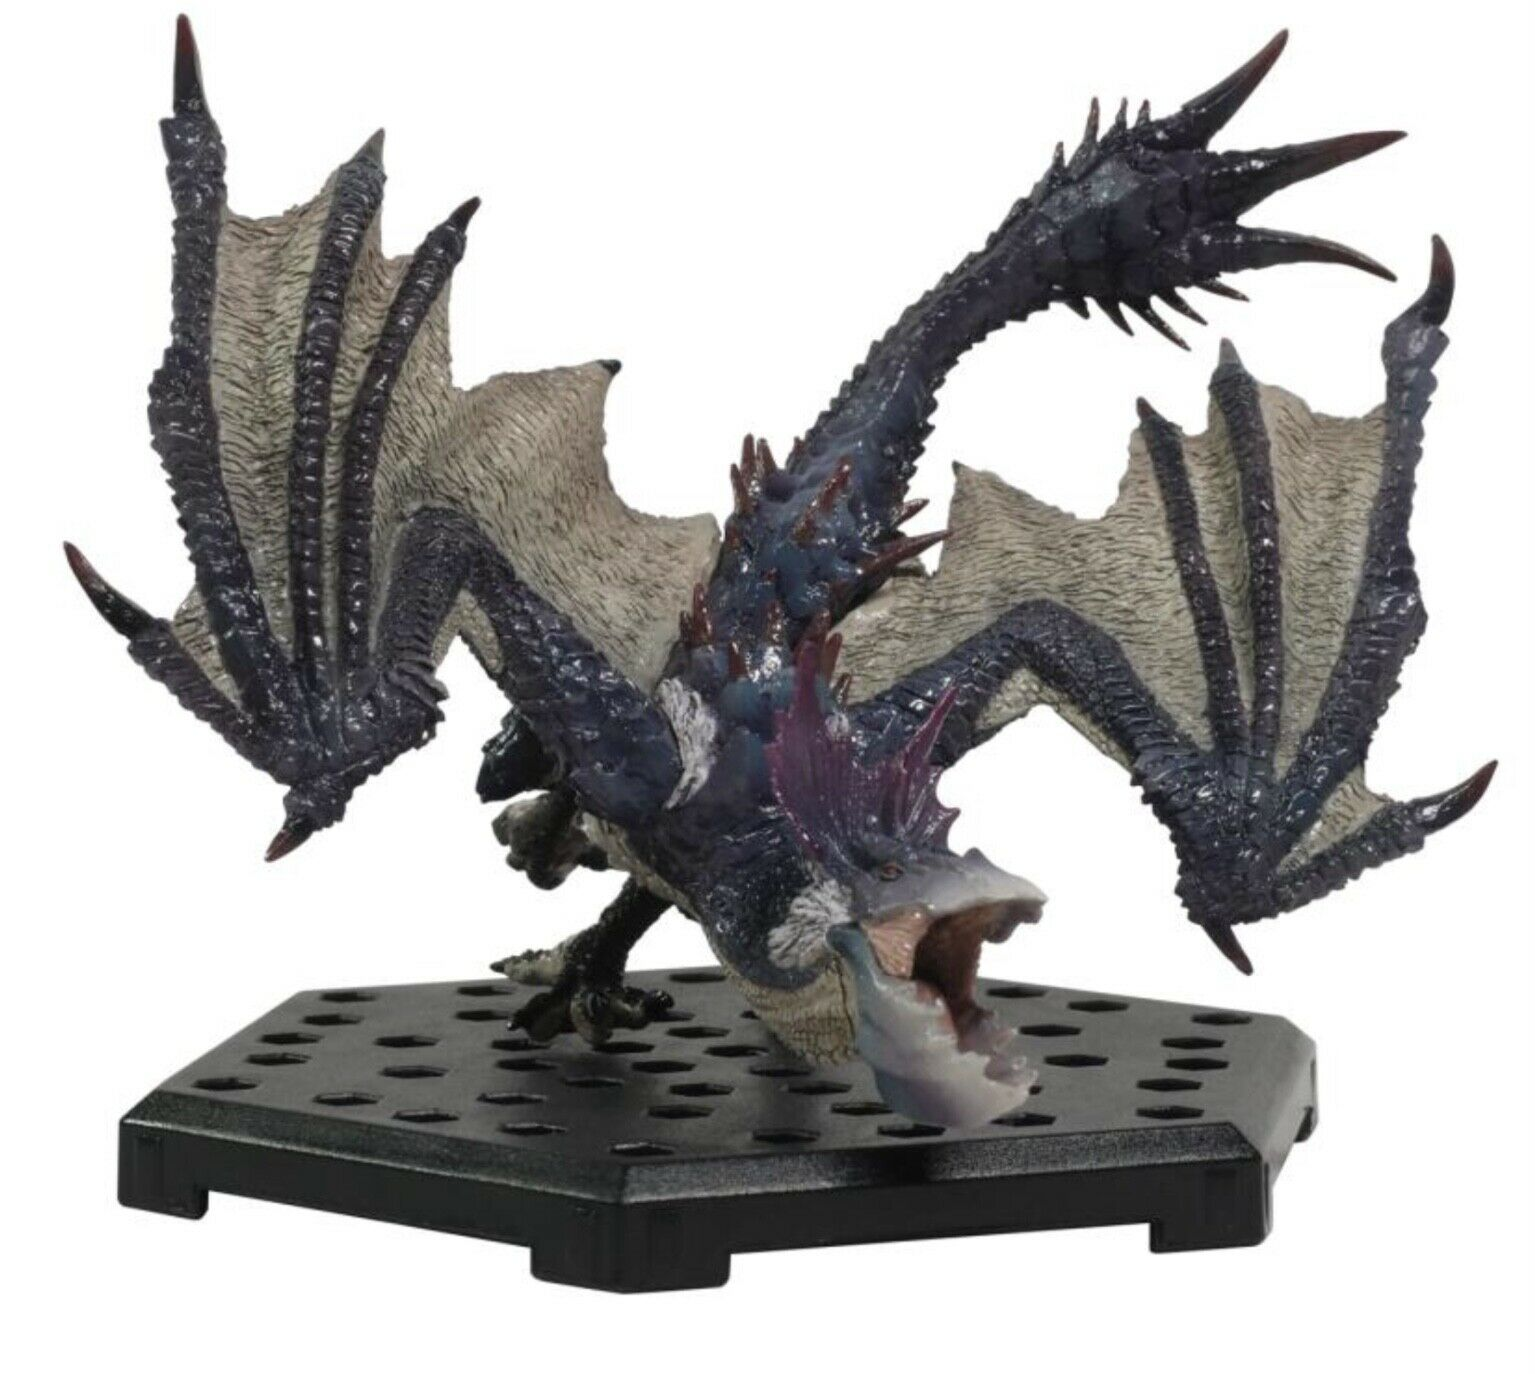 Monster Hunter Capcom Figure Builder Vol 5 Collection Yian Garuga For Sale Online Ebay For me, figuring out that the old everwyrm weakness is ice was the turning point for me to defeat it. new monster hunter world yian garuga figure builder vol 17 capcom